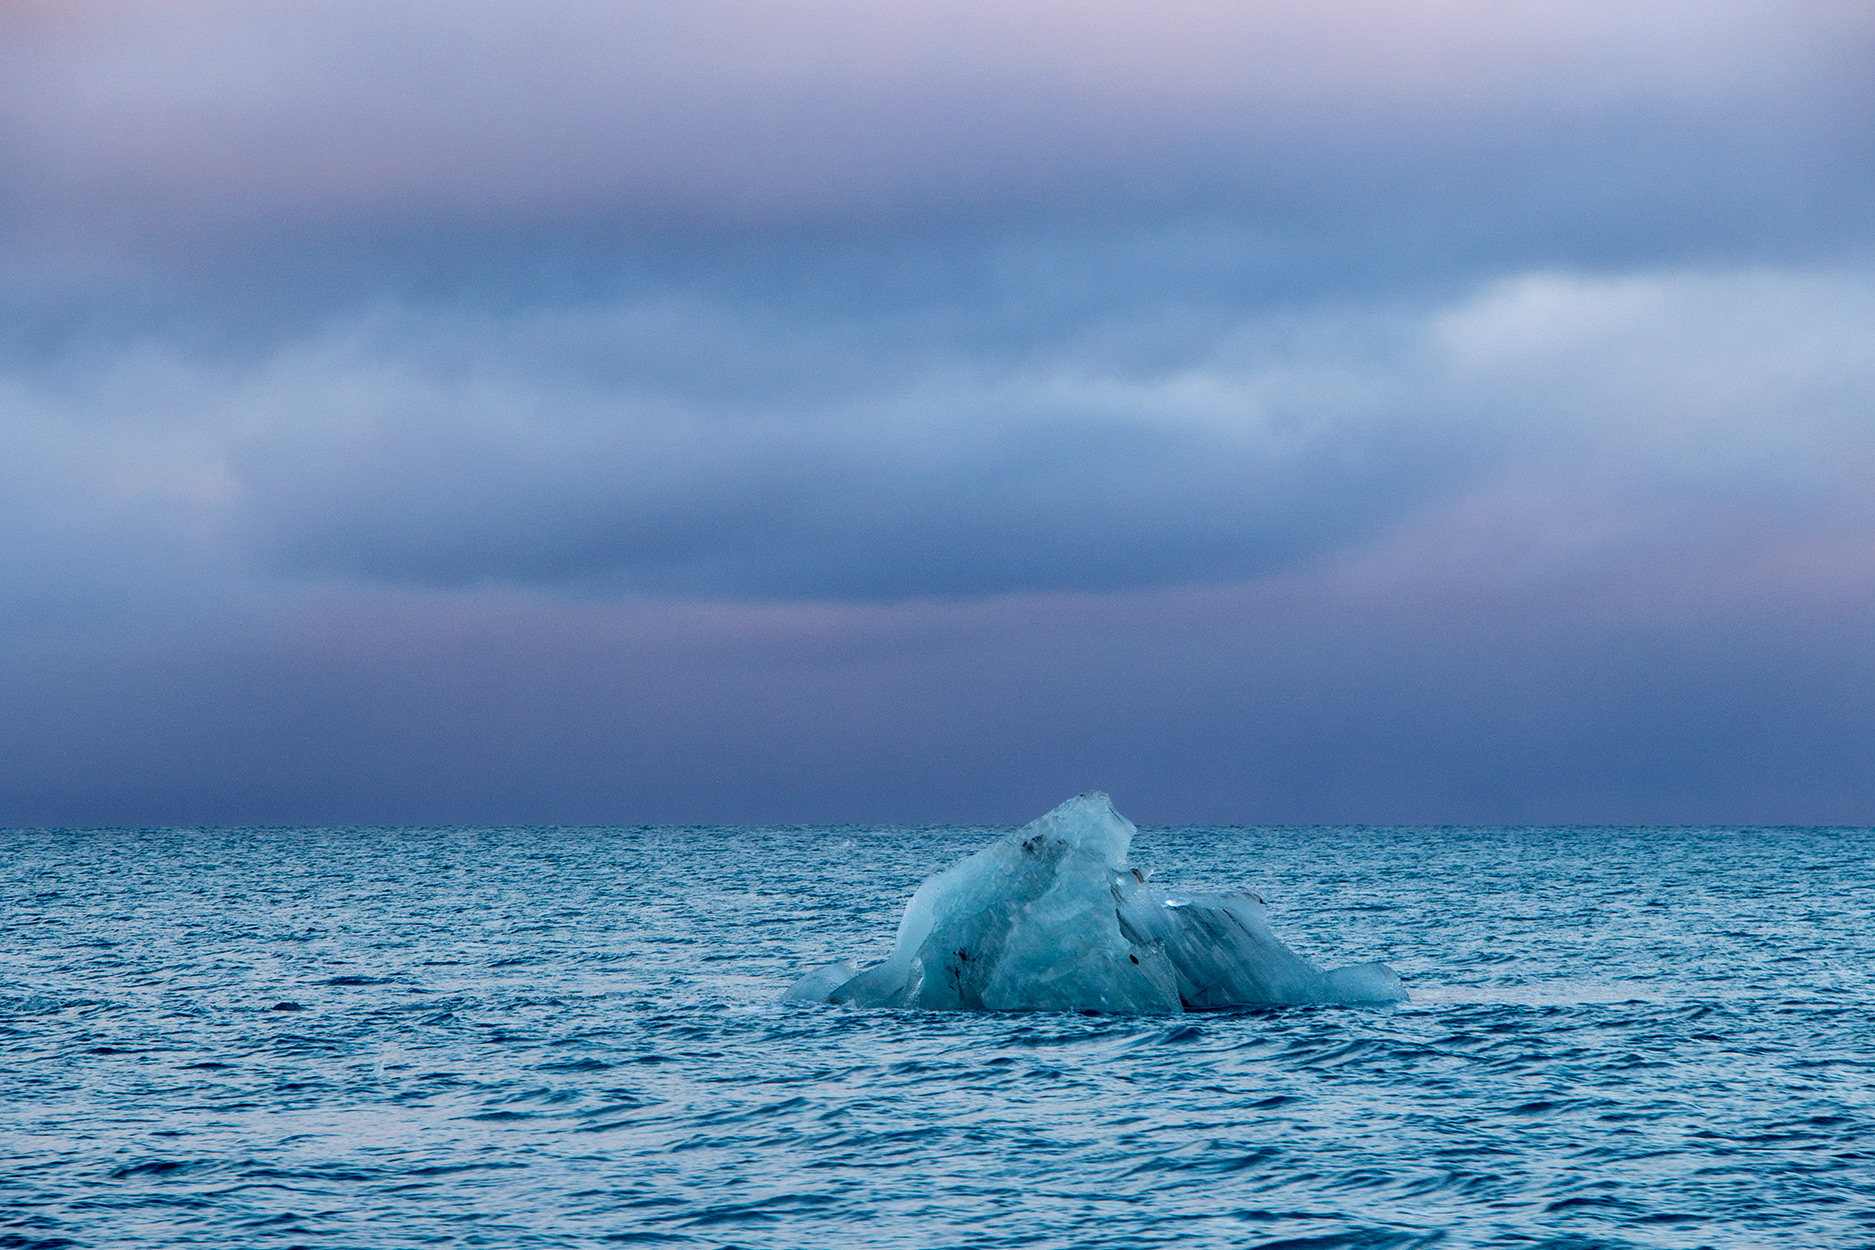 An iceberg at sea as we sailed away from Fuglefjorden.